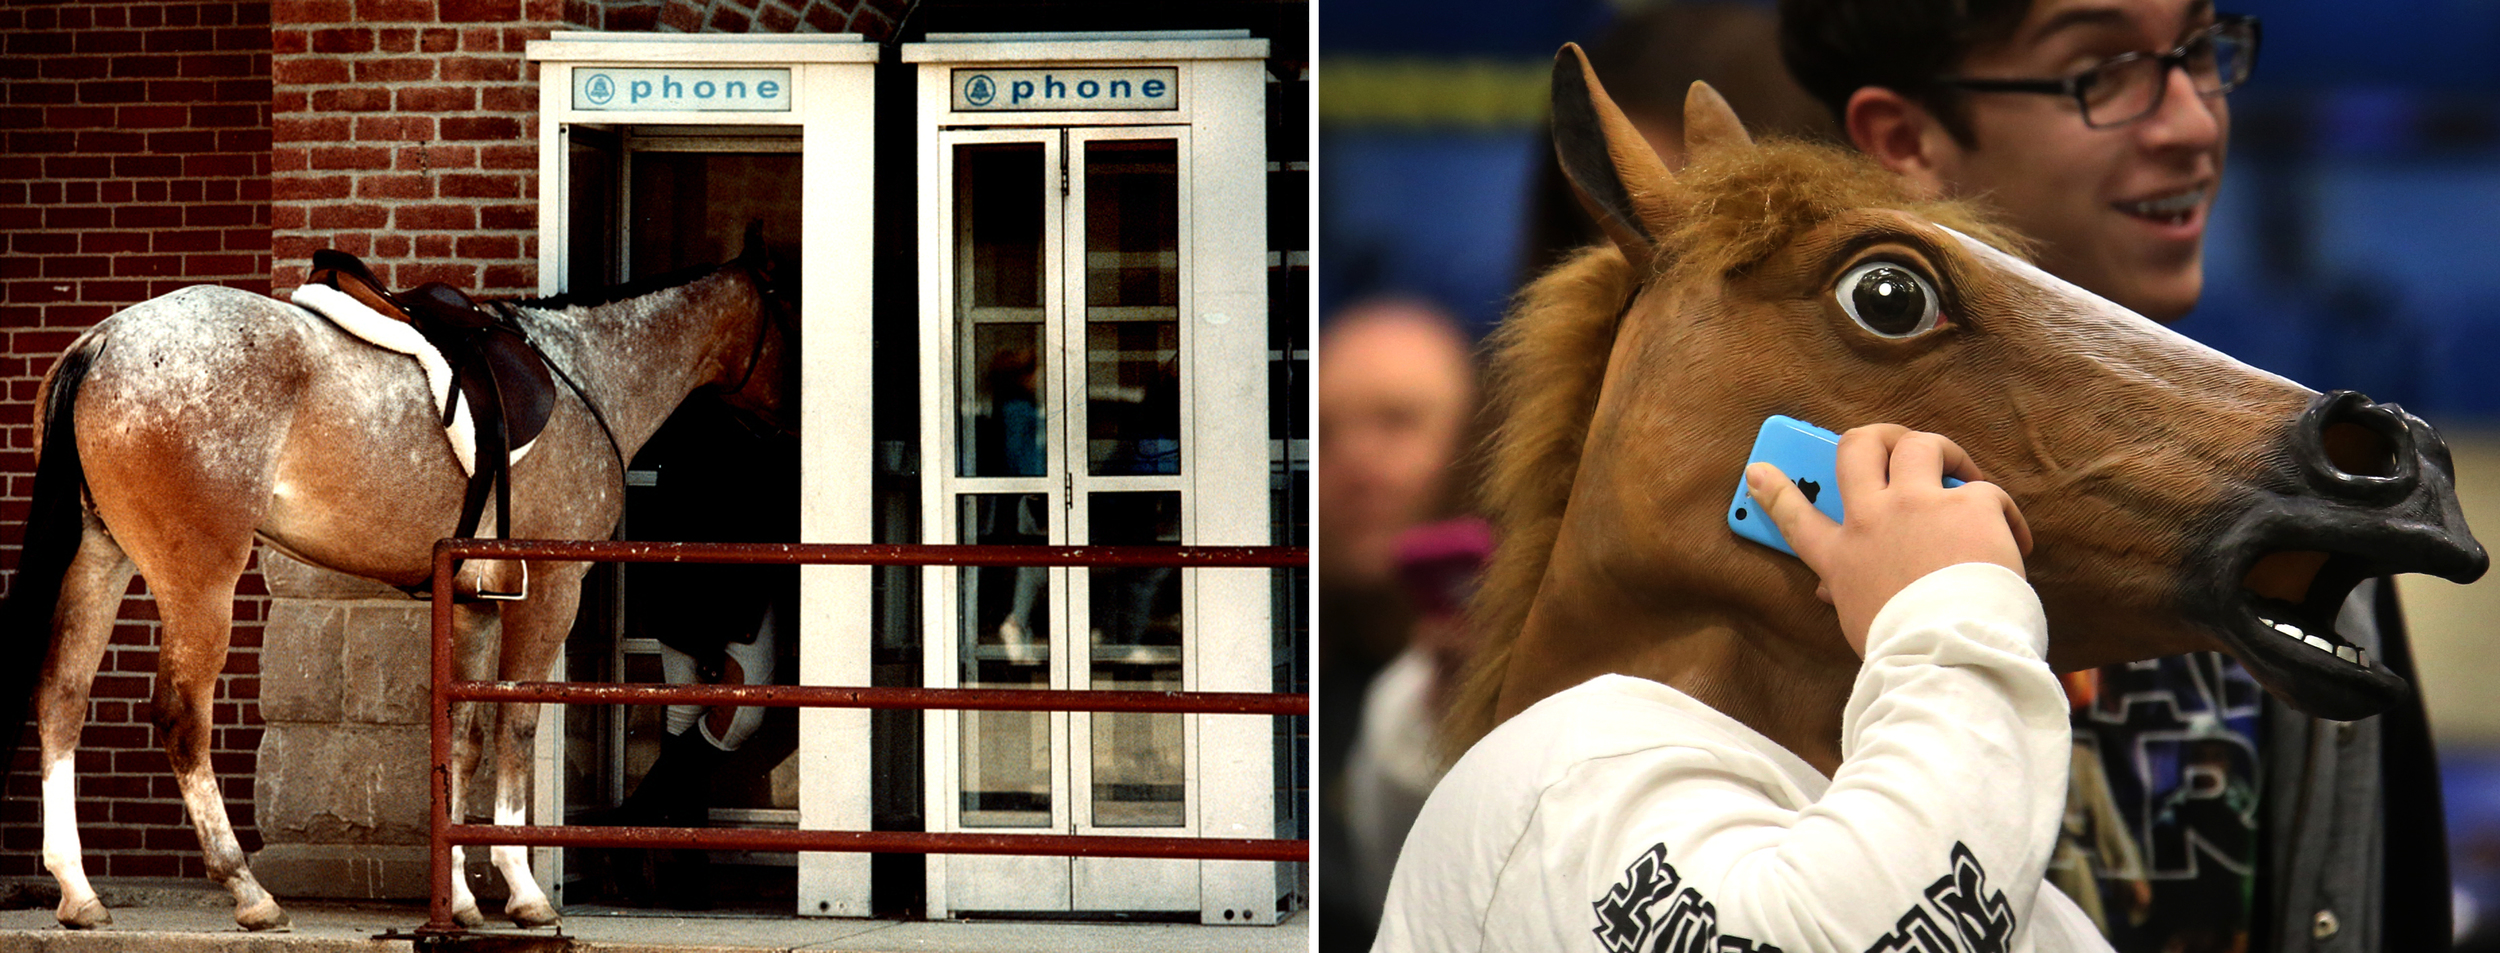 Left: April, 1990: Gwen Reichert of Marengo, Iowa, makes a call from a telephone booth outside the state fairgrounds Coliseum despite the intrusion of her horse, Sonnys Dancer, who was nuzzling in on the conversation. Both were in Springfield for the Railsplitter Horse Show. Right: January, 2016: Donning a horse mask, Southeast High School student Jared Smothers took a phone call while standing in the Spartans student cheering section during the 68th annual City Boys Basketball Tournament at Springfield's Prairie Capital Convention Center. David Spencer/The State Journal-Register